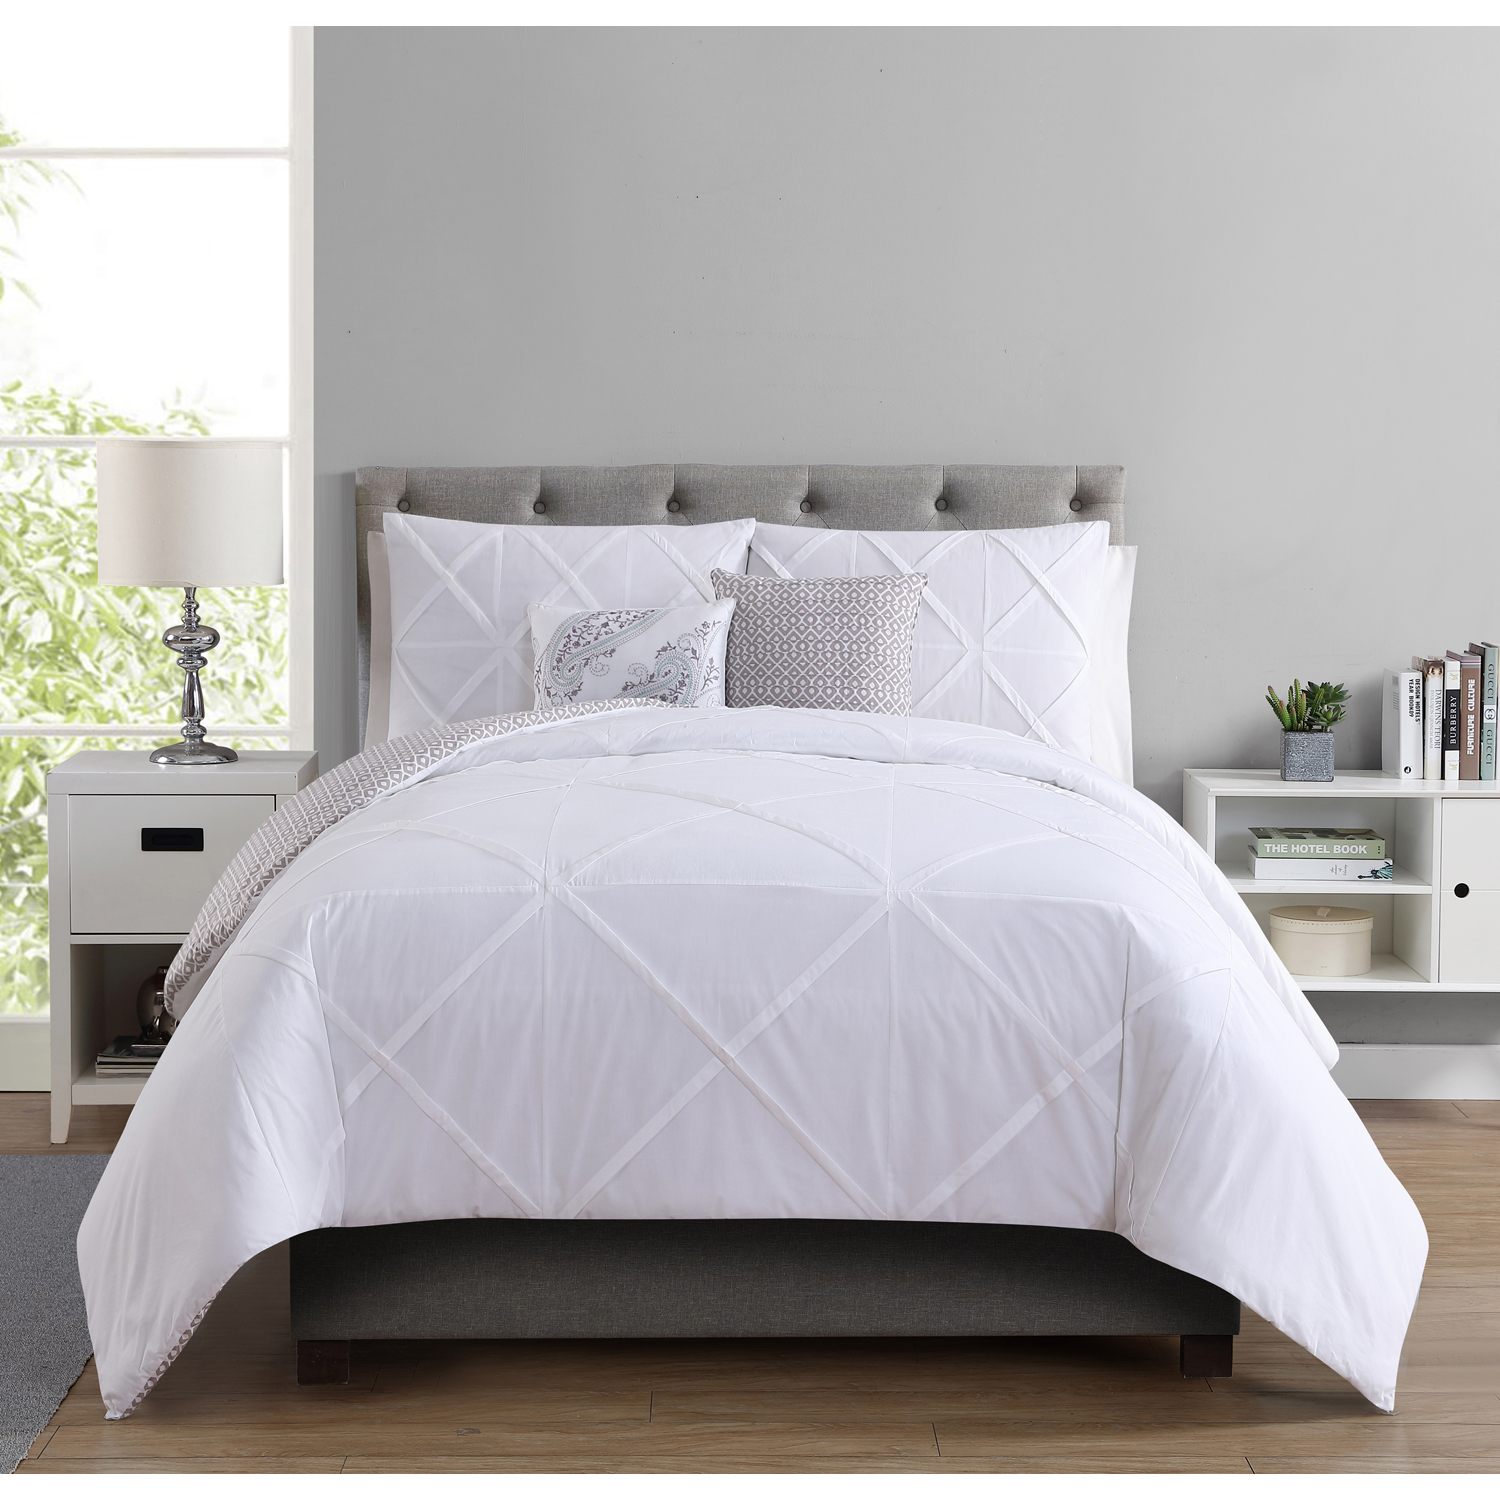 Better Homes and Gardens Pinched Design 5-Piece Reversible Cotton Bedding Comforter Set, White, Queen